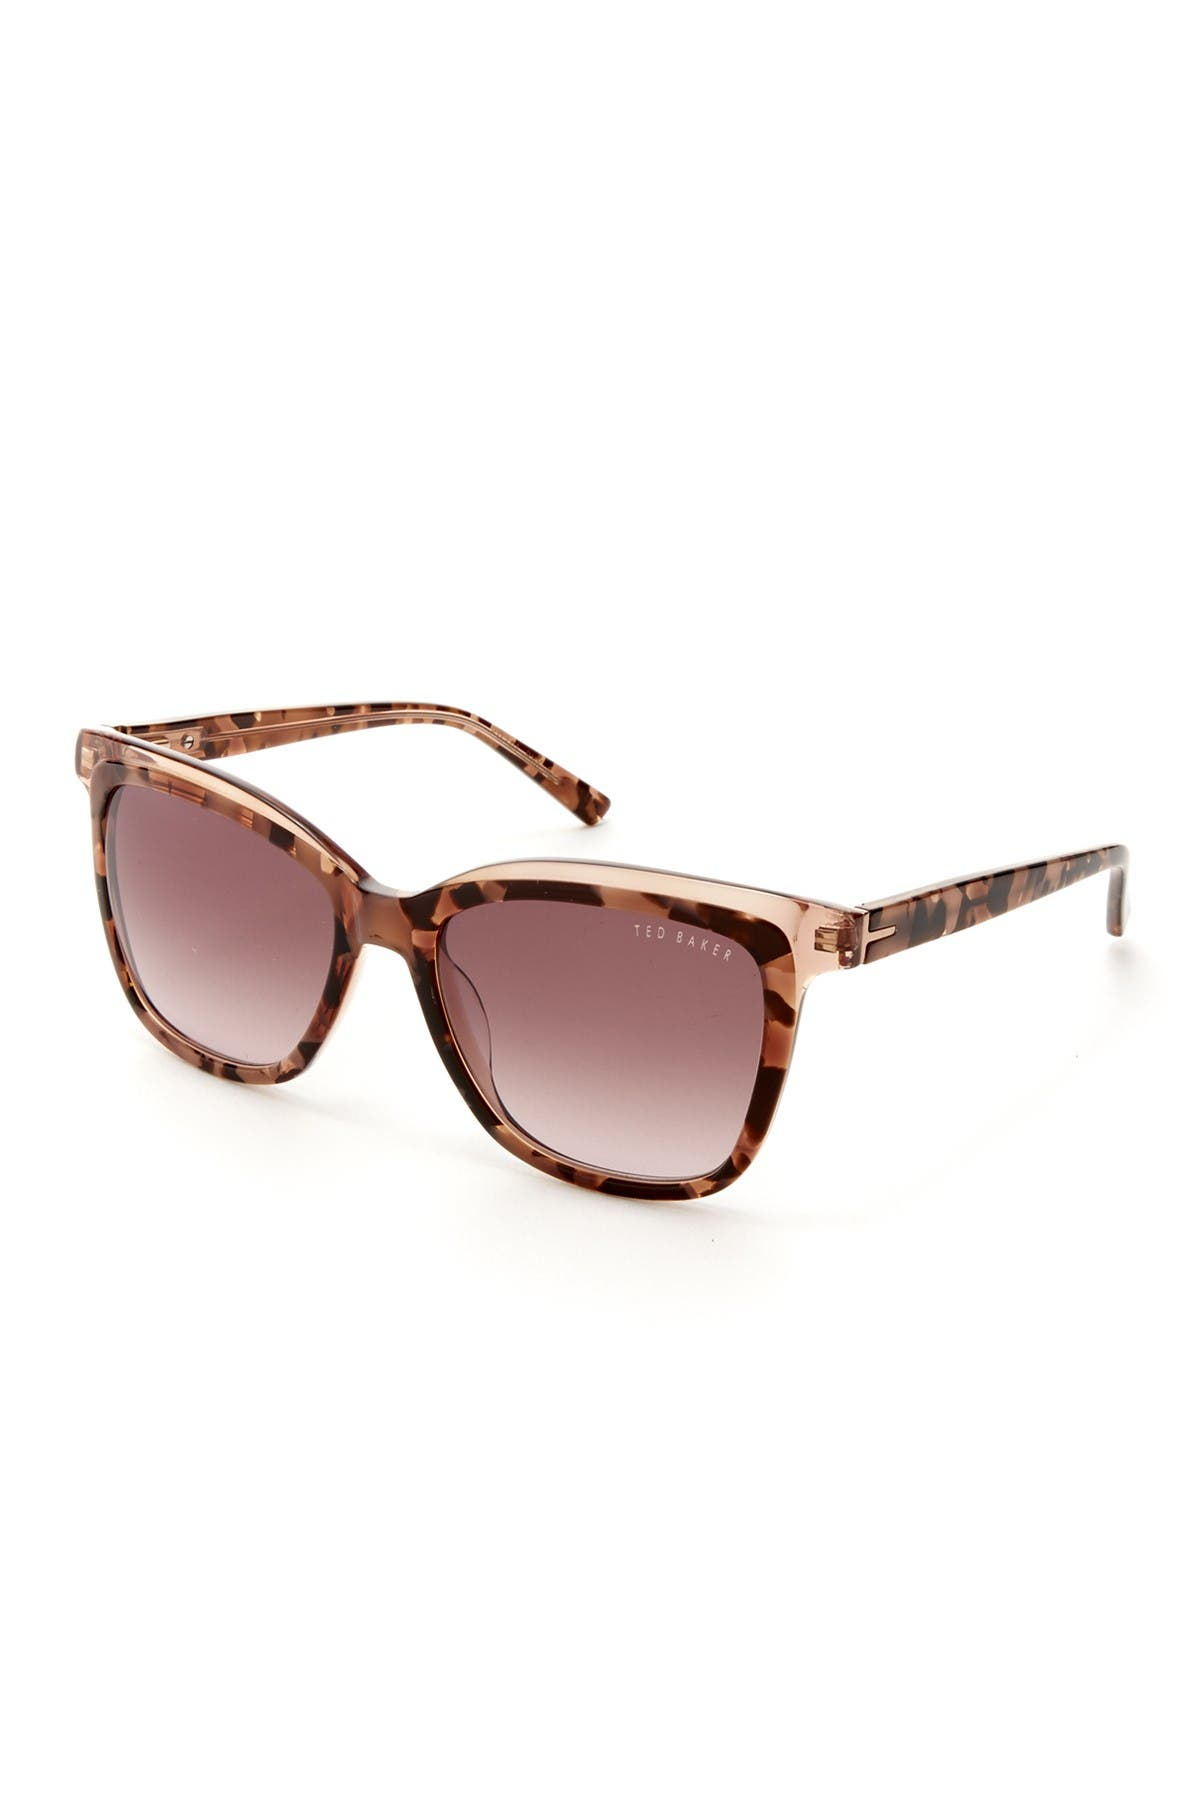 Image of Ted Baker London 54mm Acetate Square Sunglasses